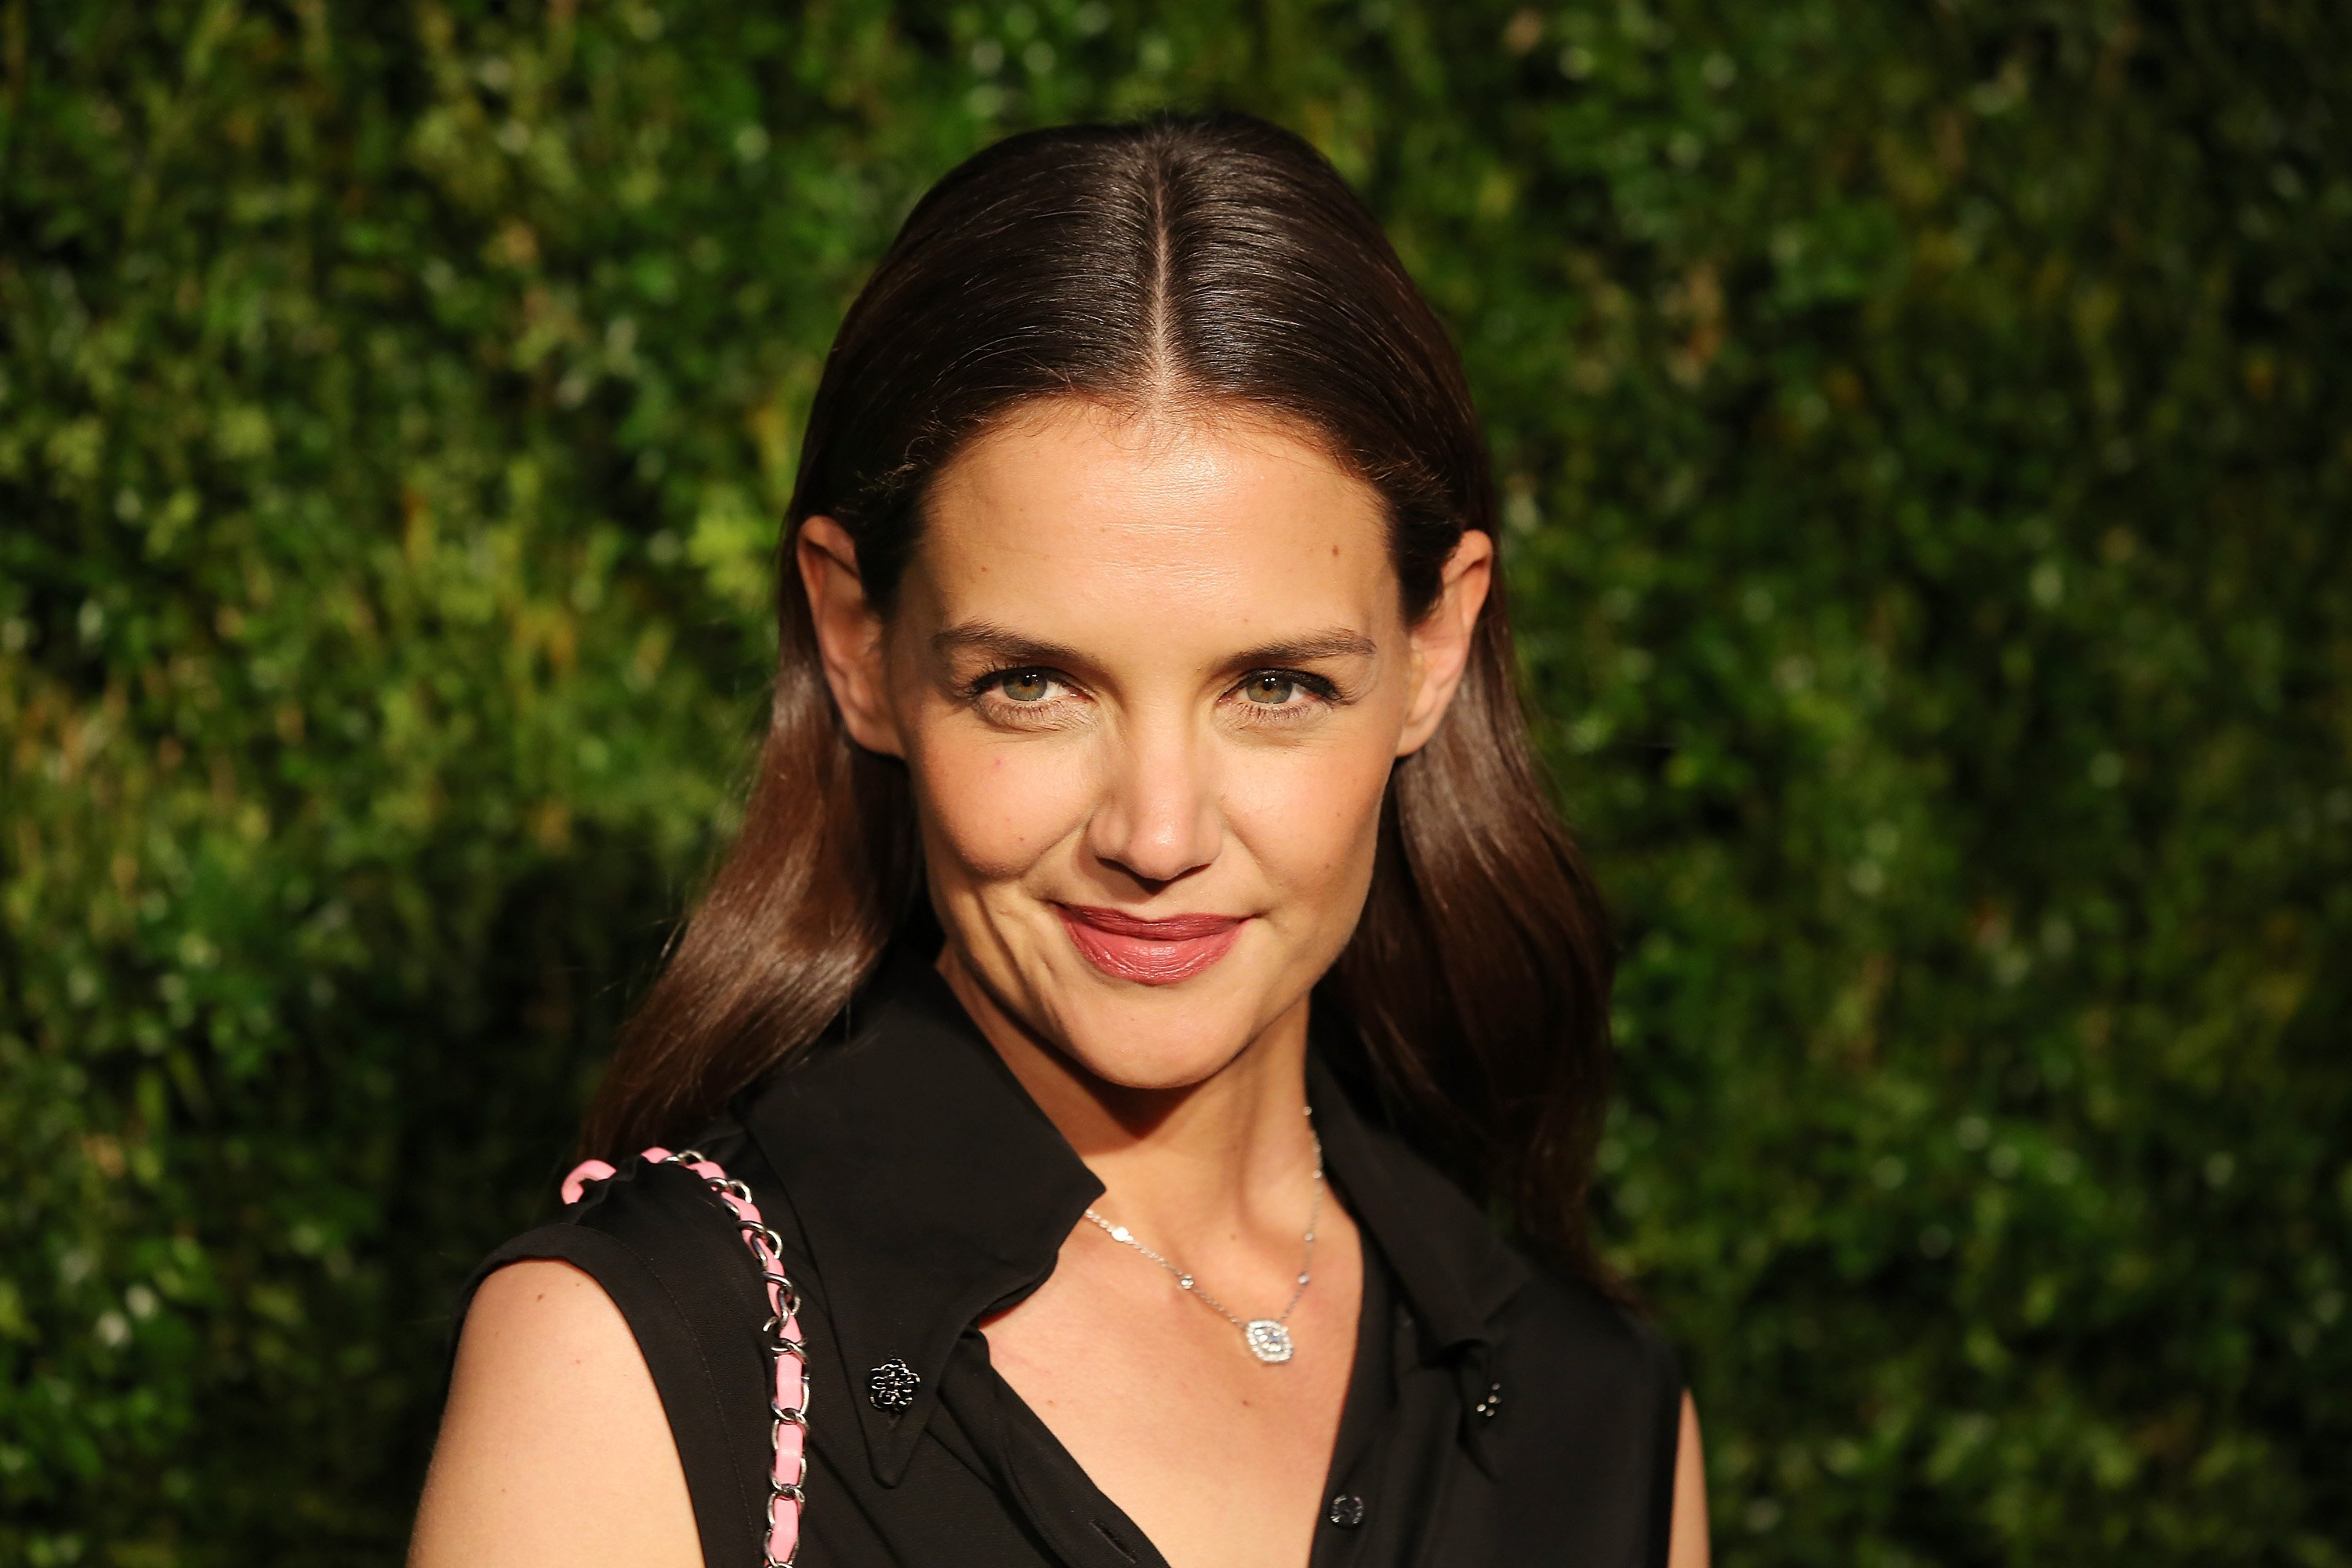 Katie Holmes at the 11th Annual Chanel Tribeca Film Festival Artists Dinner at Balthazar on April 18, 2016, in New York City | Photo: Getty Images